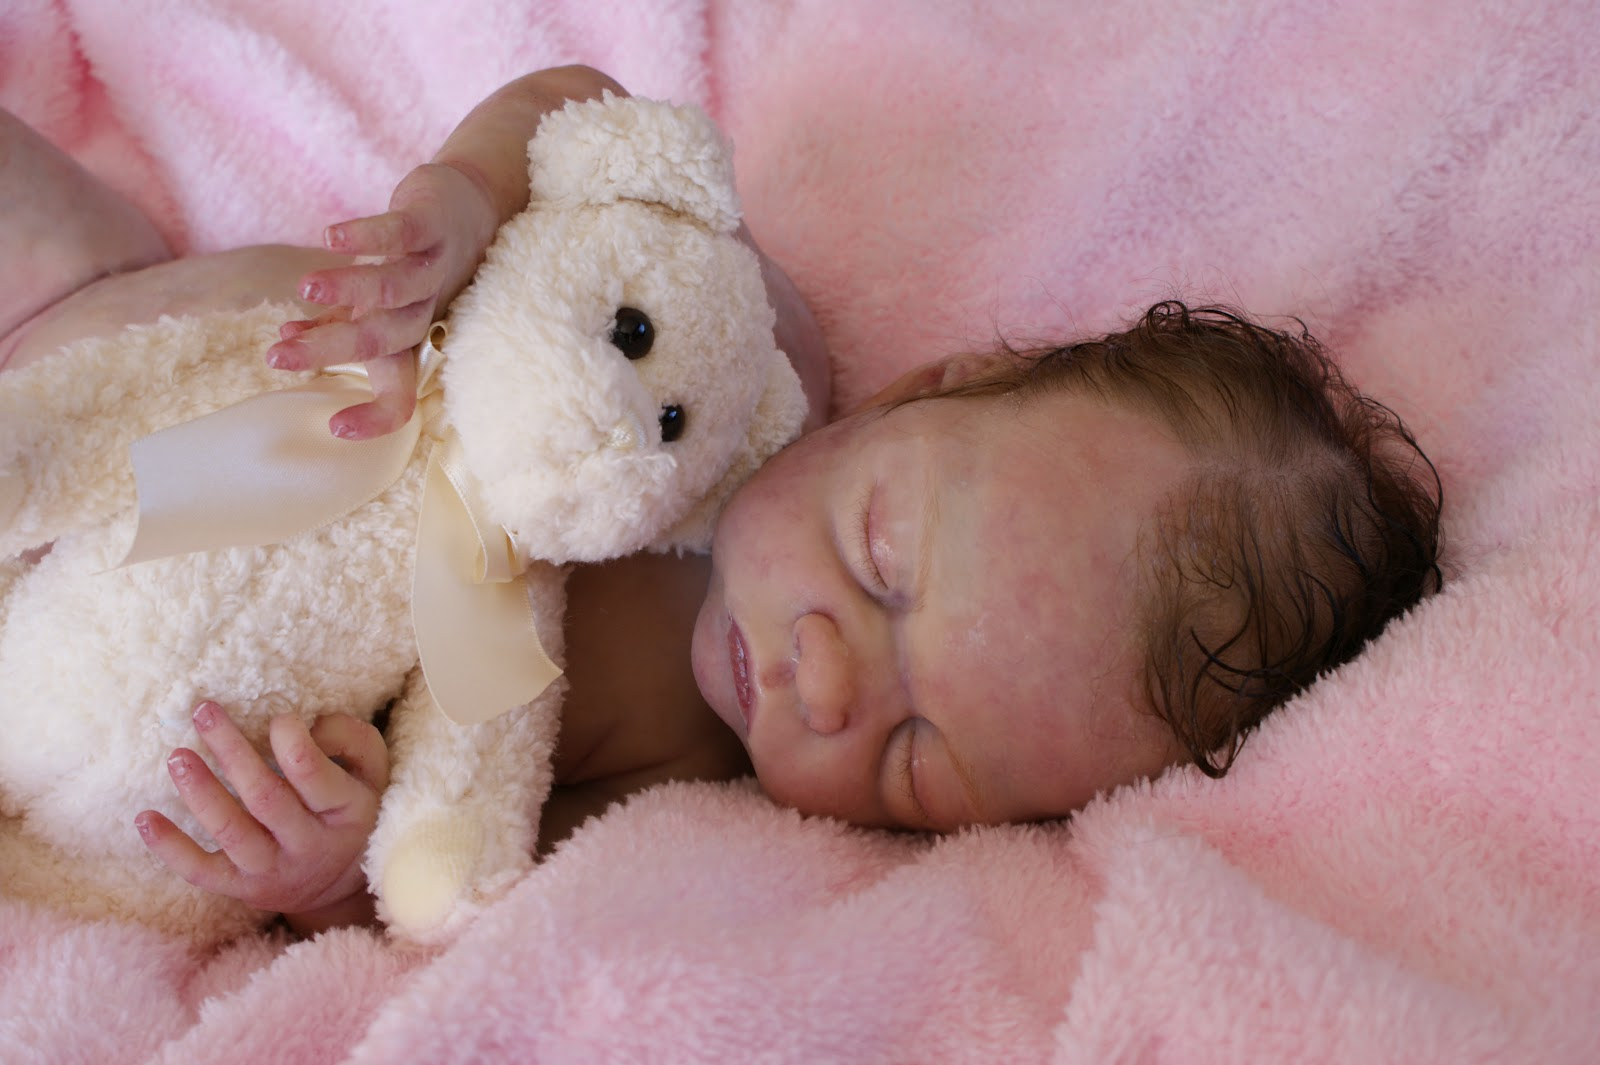 Full body silicone baby for sale 2015 - Aliona Full Body Solid Silicone Baby Girl Coming Soon